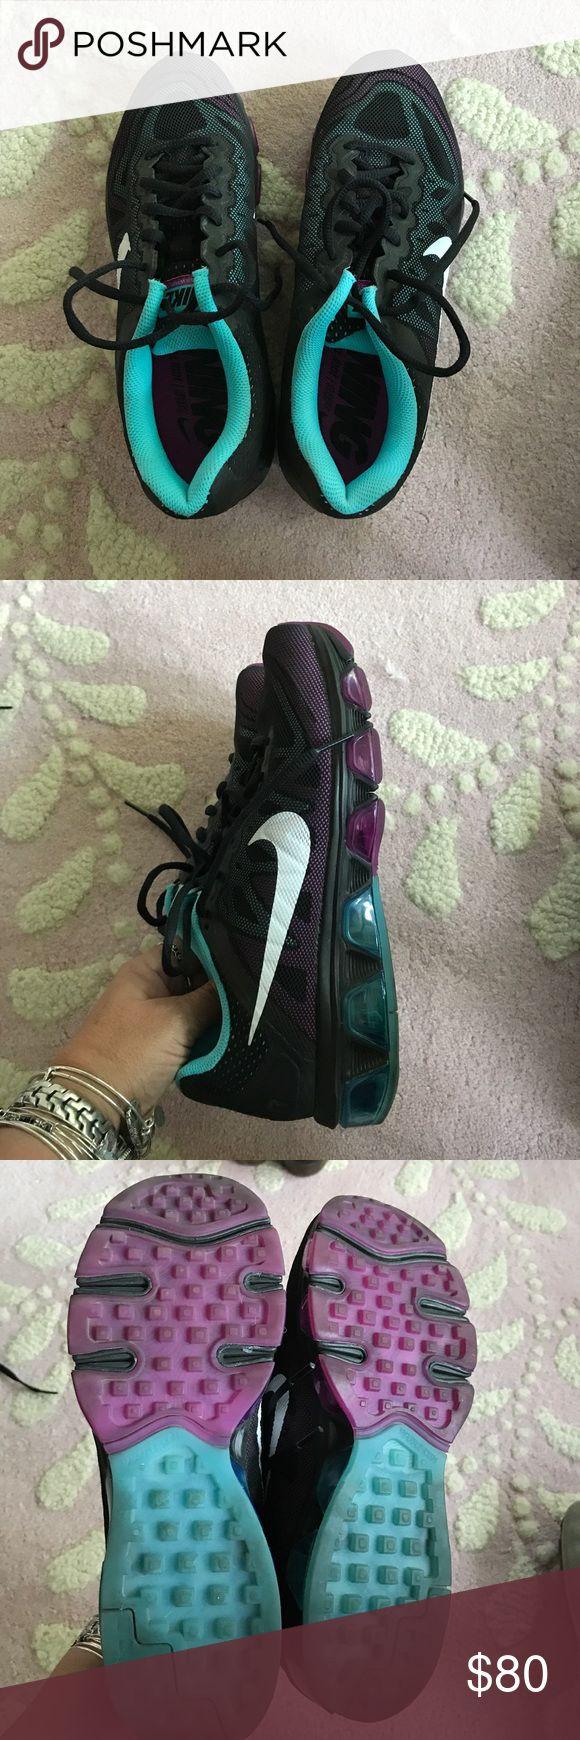 Nike Air Max Tailwind 7 Nike Air Max Tailwind 7 worn twice!! Size 8! In Excellent condition! Nike Shoes Athletic Shoes